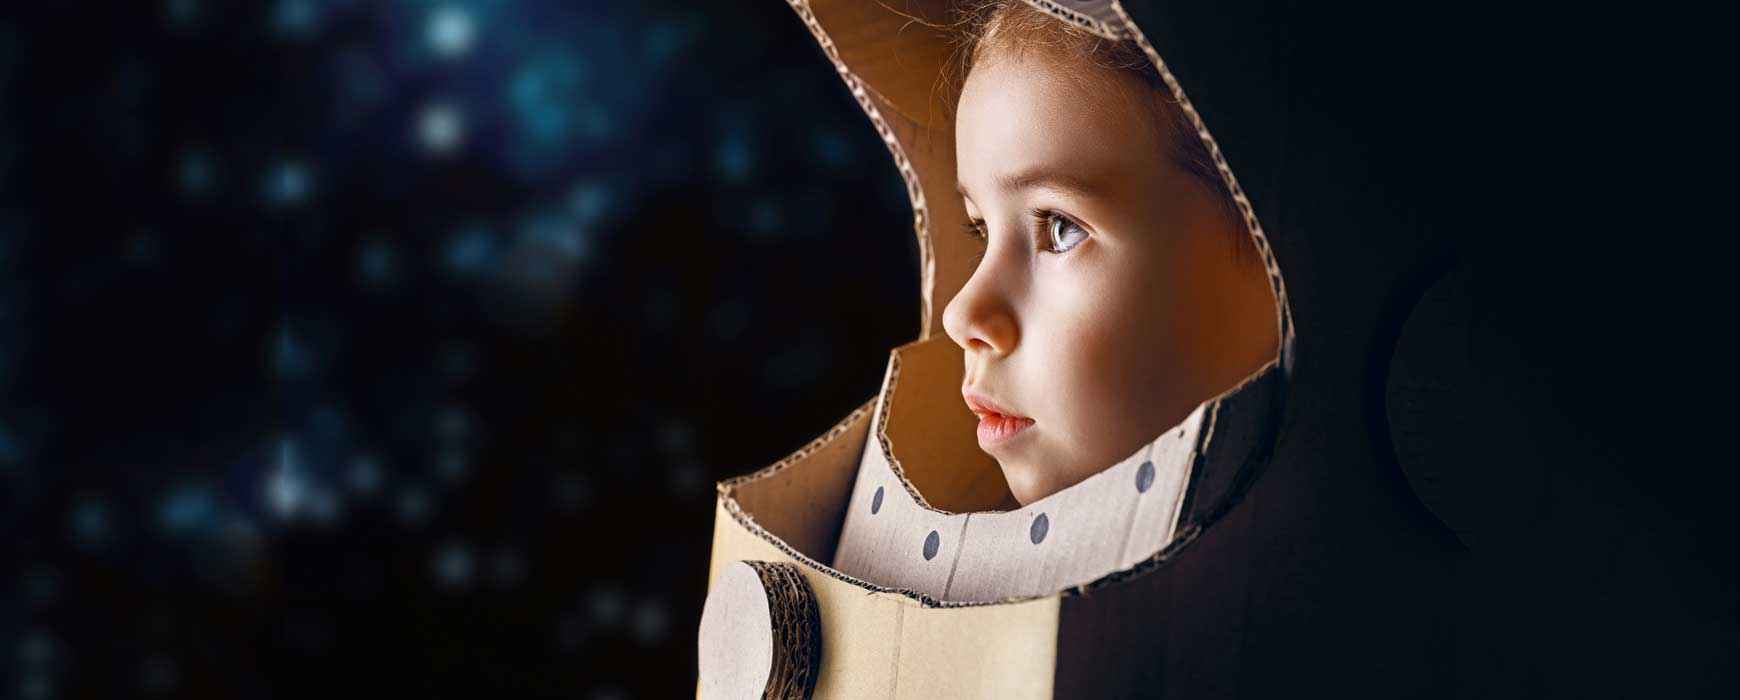 Young child in a self made astronaut helmet looking out with determined wonder at the stars.